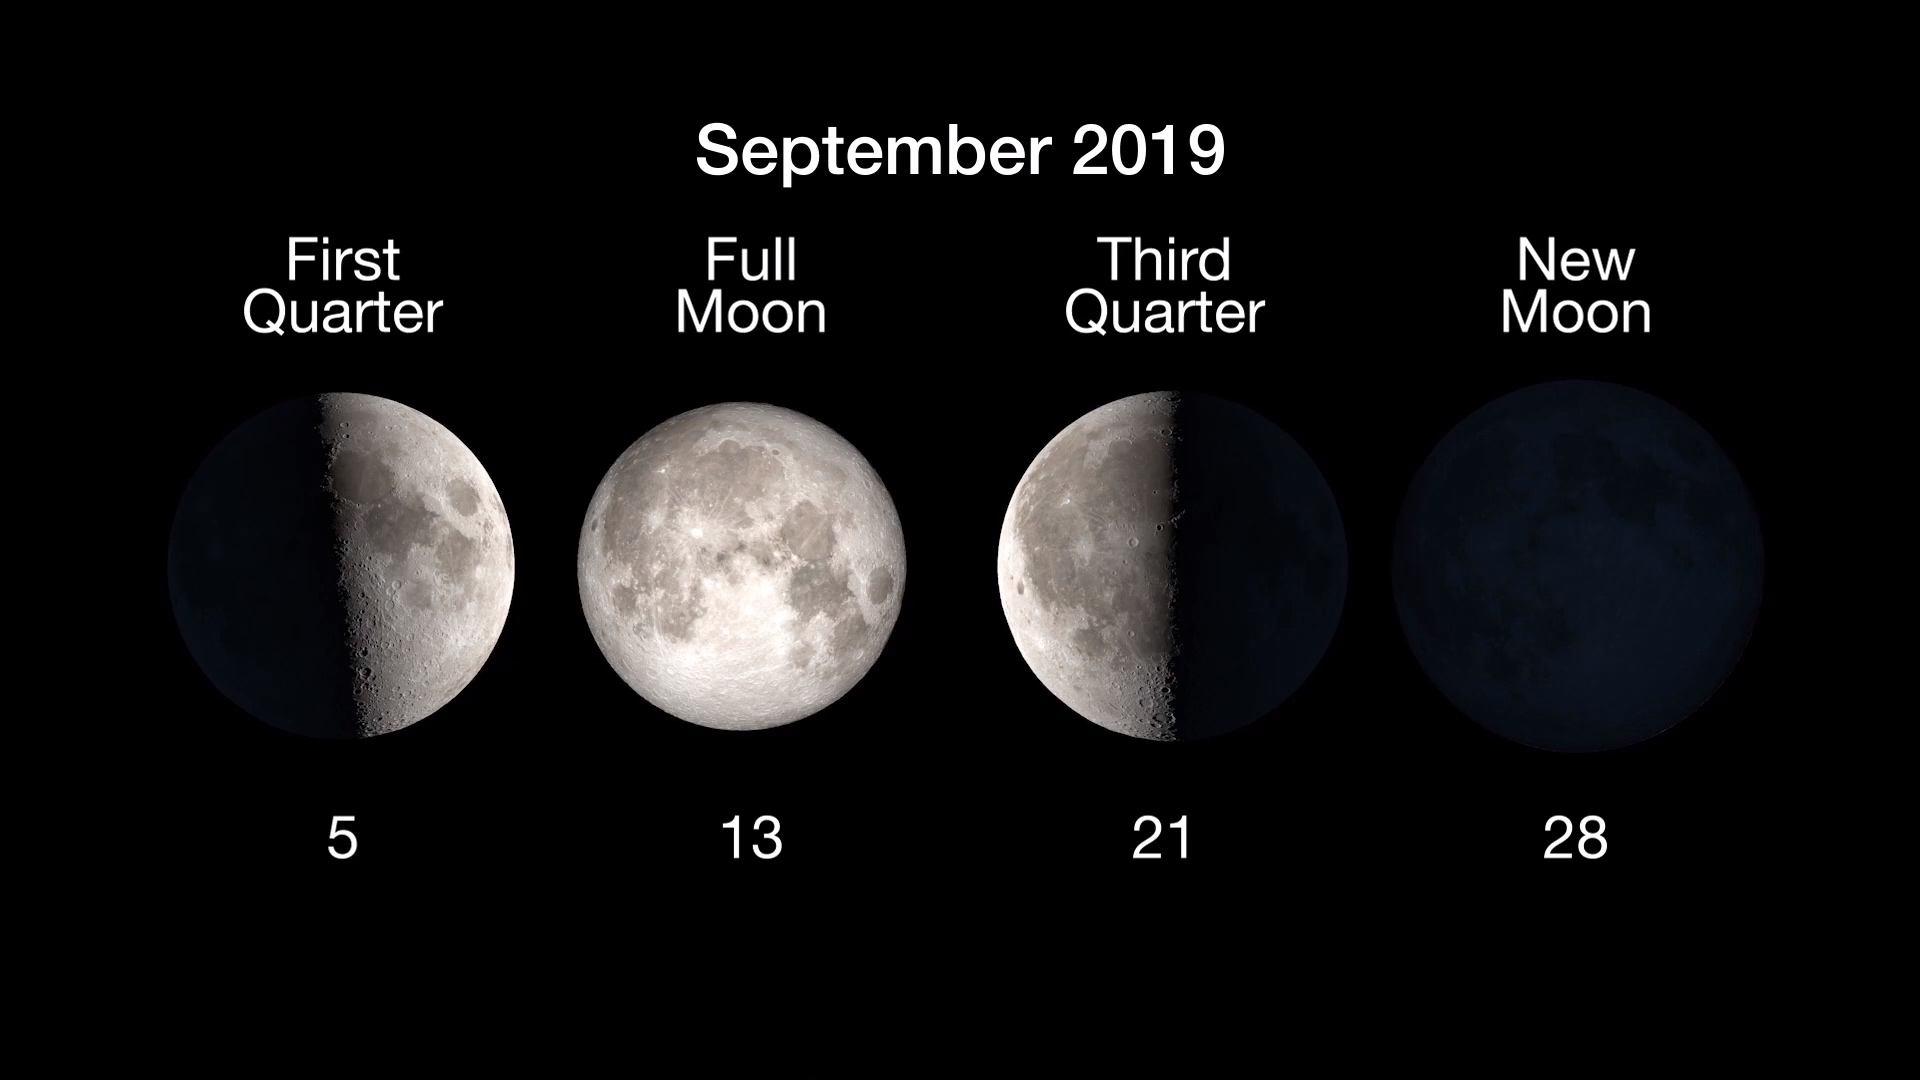 chart showing moon phases and dates